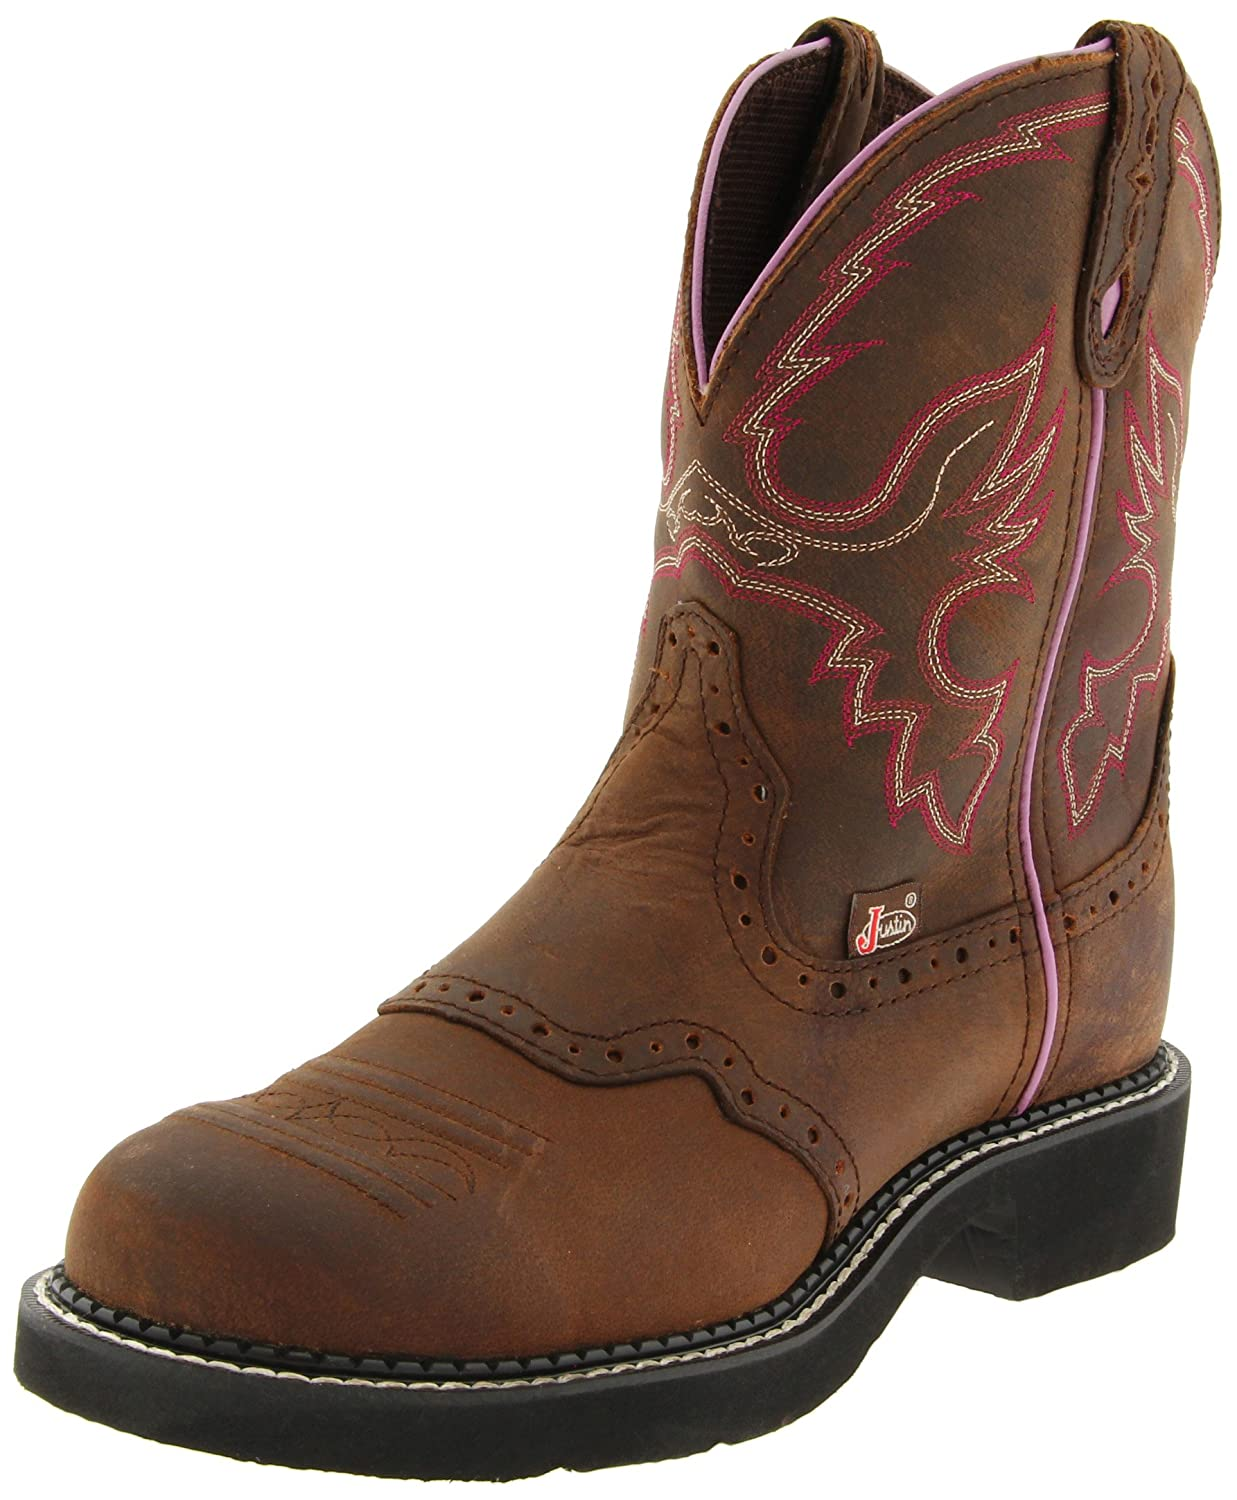 Justin Boots Women's Gypsy Collection Western Boot B00131C29M 5 B(M) US|Aged Bark